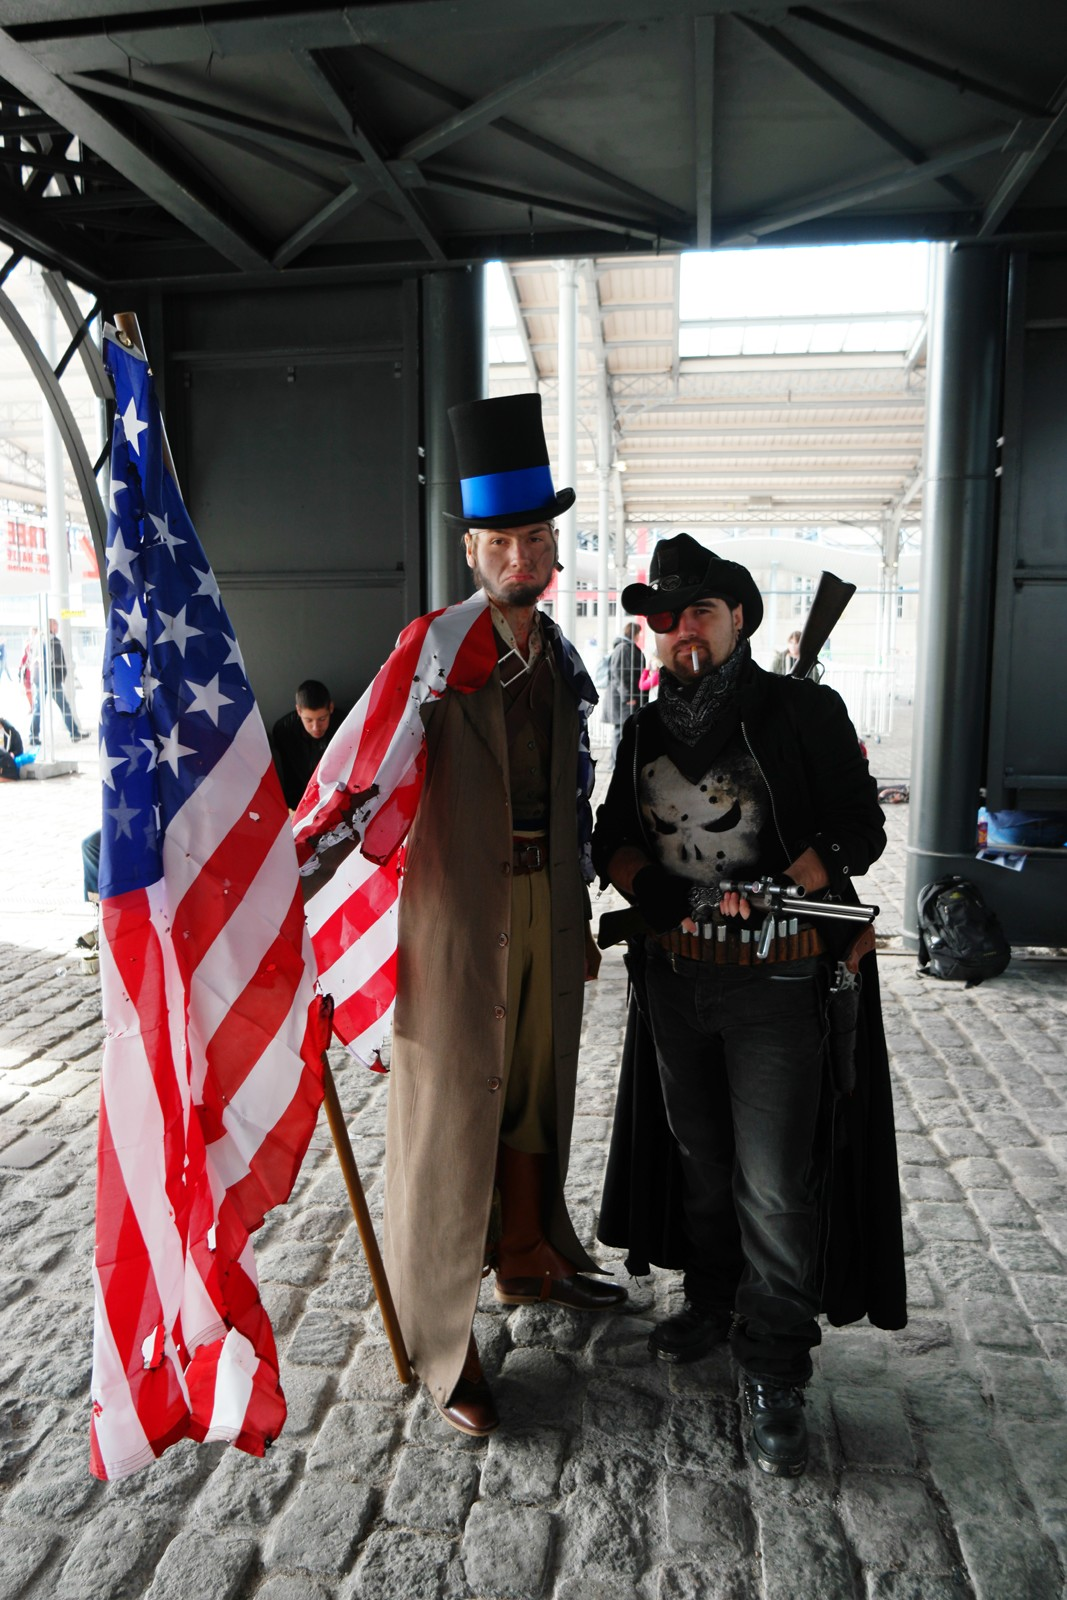 Vintage american men Comic Con paris cosplay festival 2015 Grande Halle de la Villette photo united states of paris blog